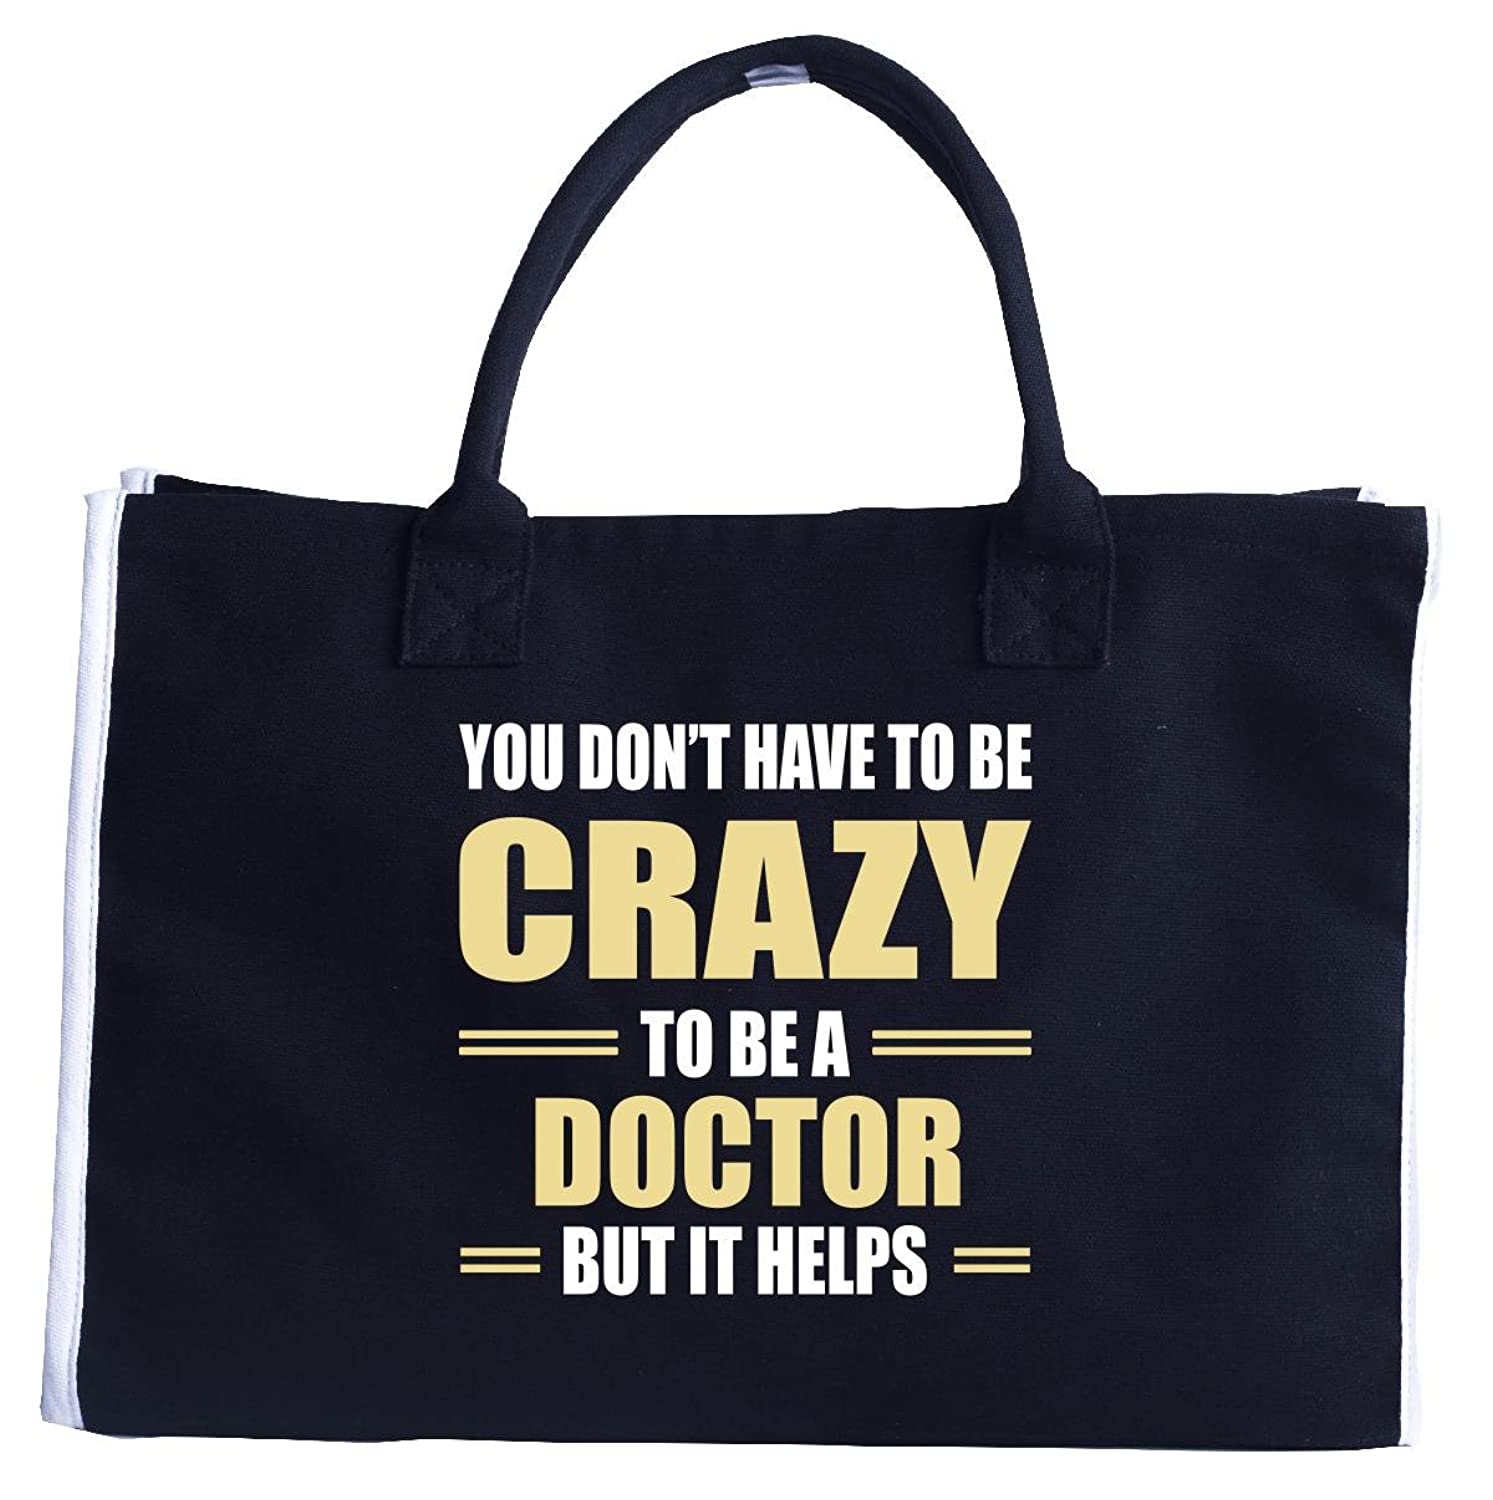 You Don't Have To Be Crazy To Be A Doctor - Fashion Tote Bag